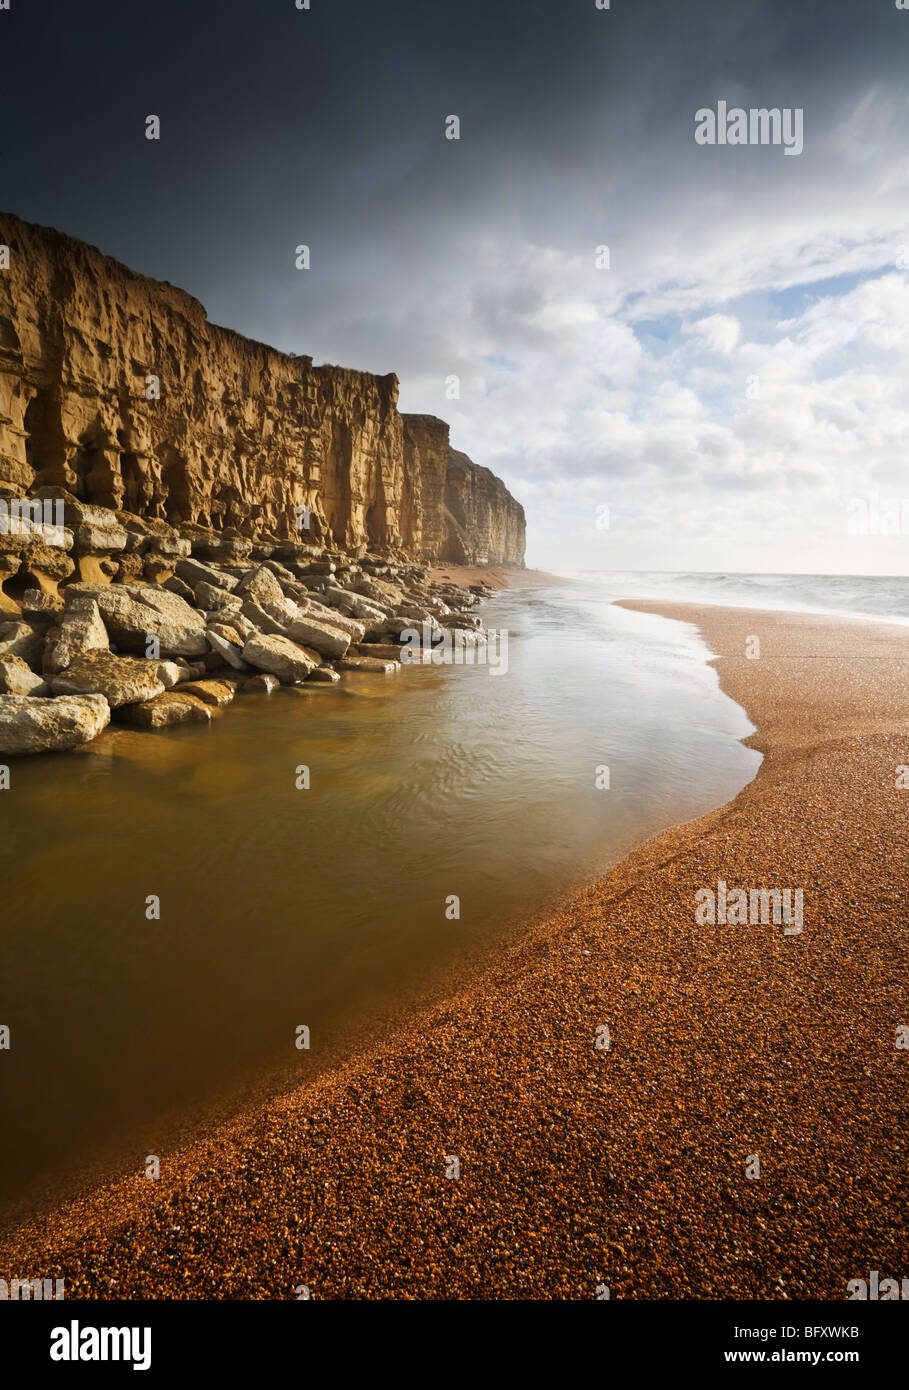 The River Bride and Burton Cliff. Jurassic Coast World Heritage Site. Dorset. England. UK. - Stock Image